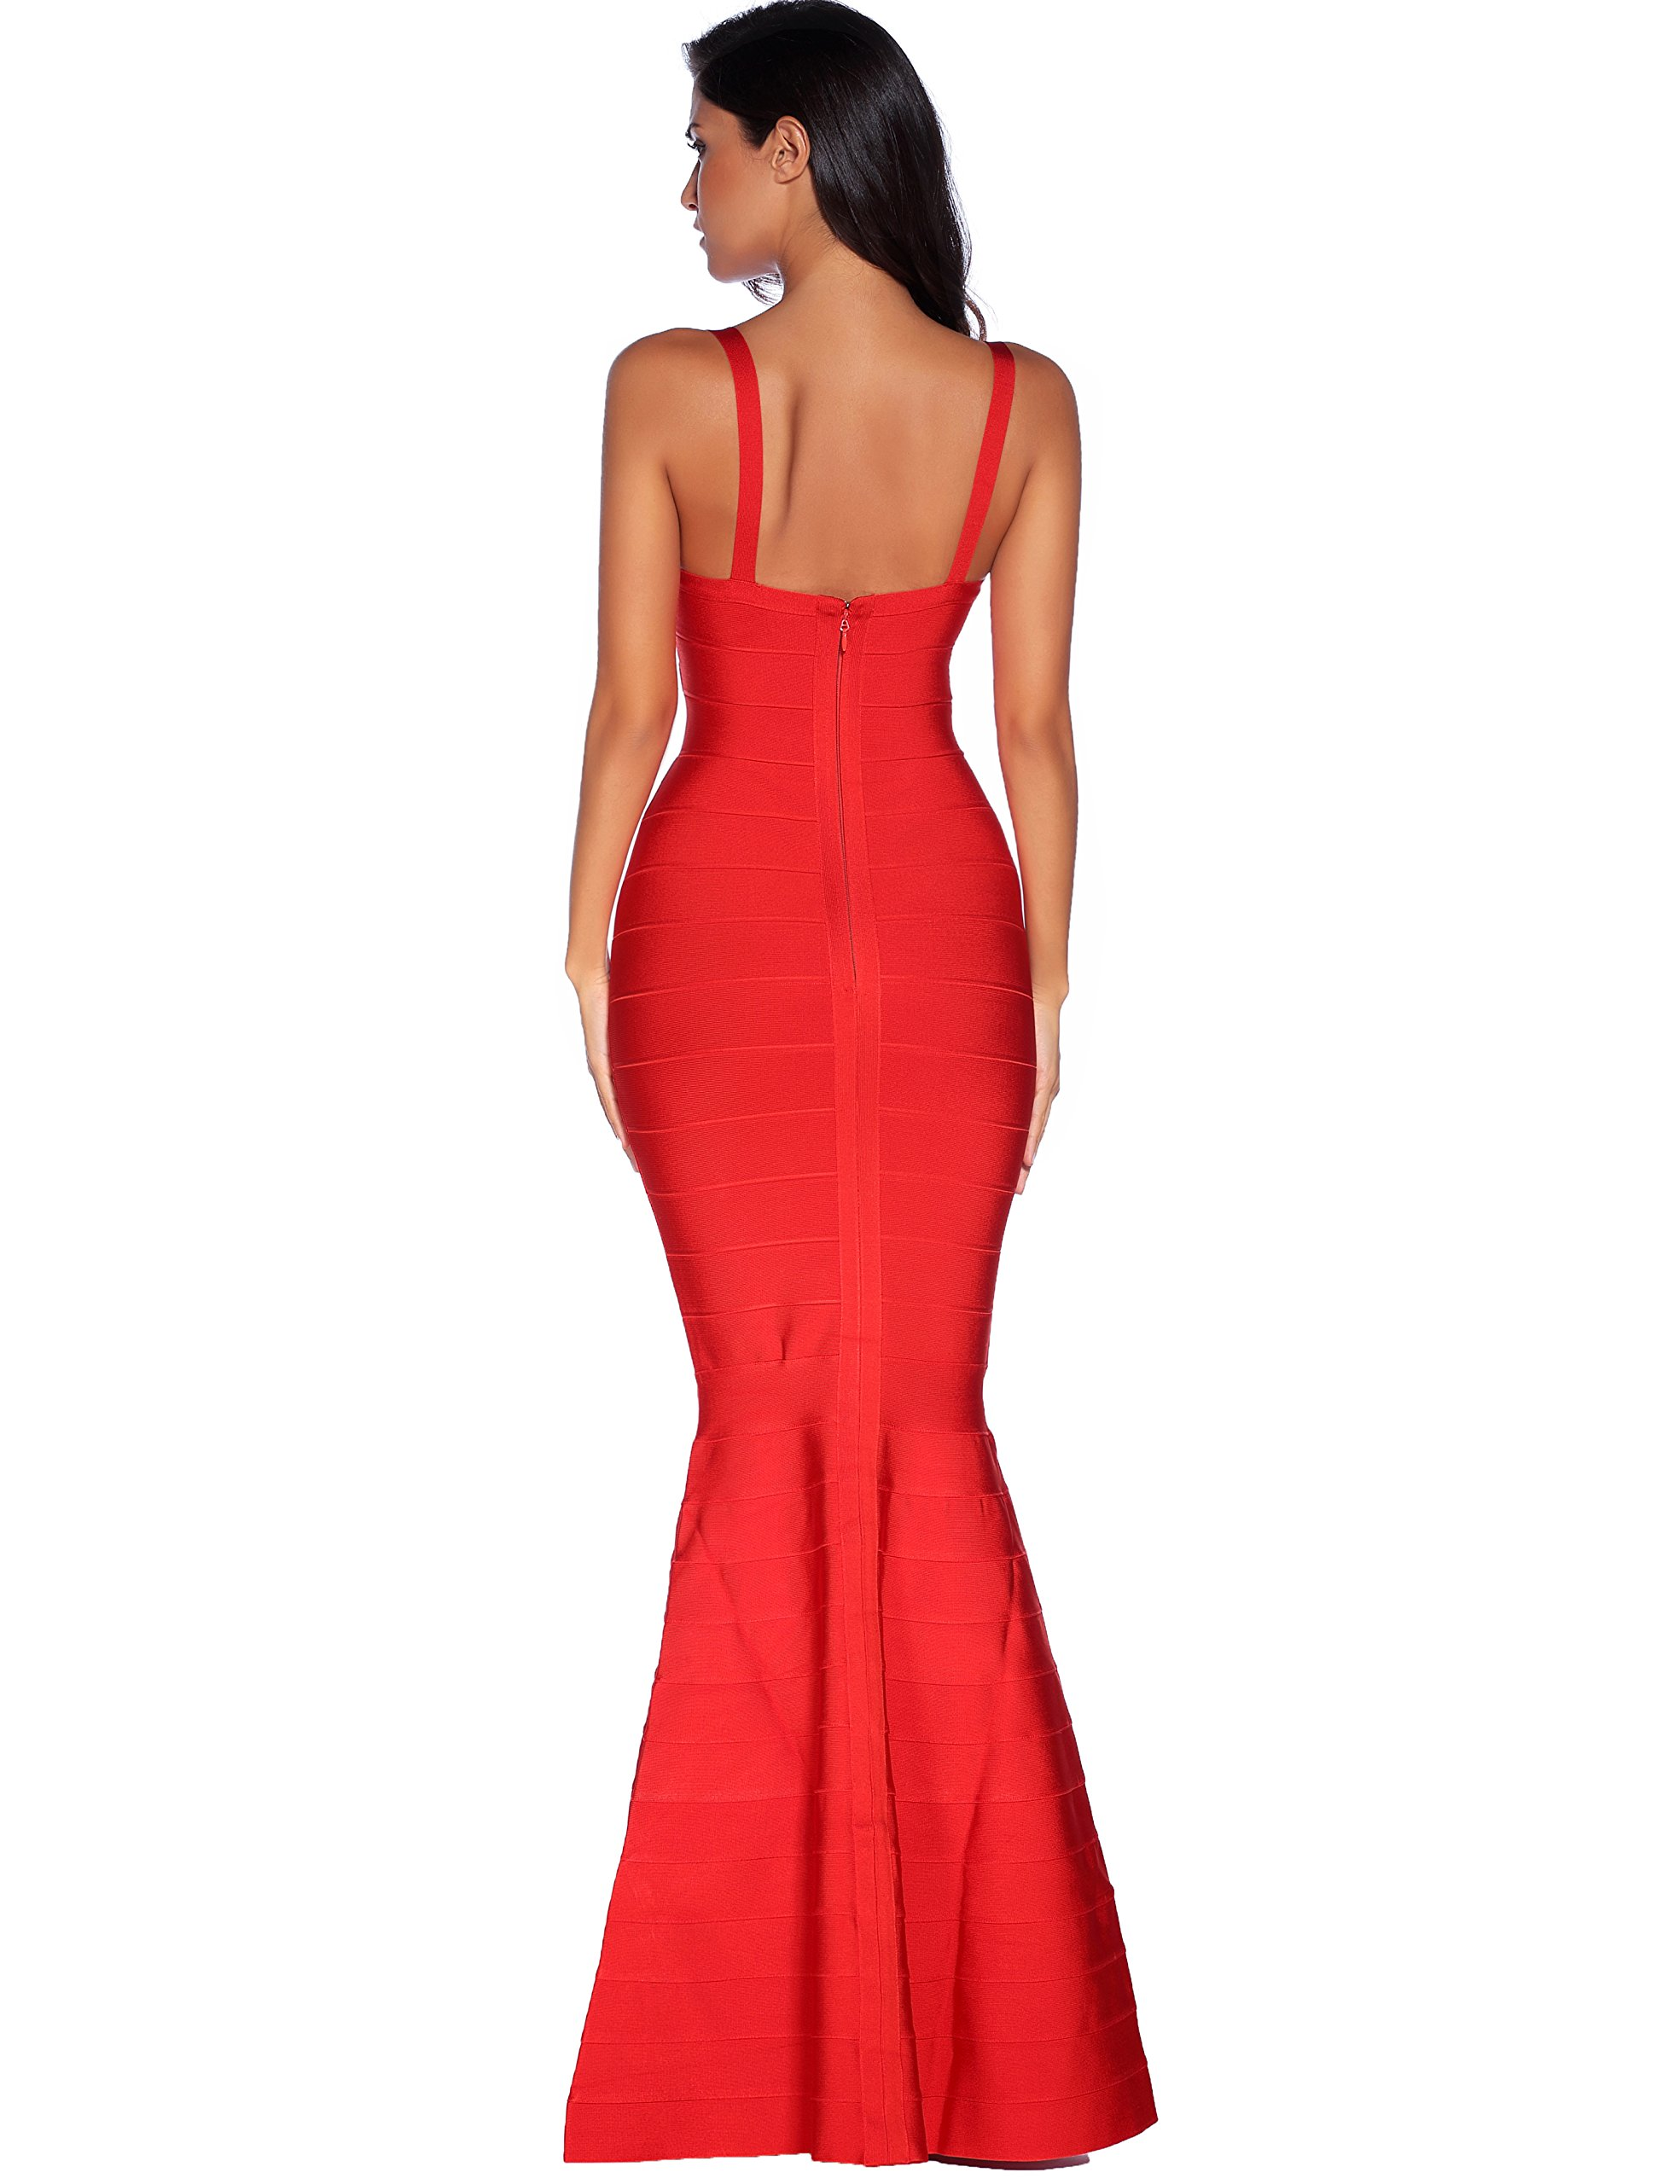 Meilun Womens Sleeveless Maxi Bandage Dress Strap Swing Dress Large Red by Meilun (Image #2)